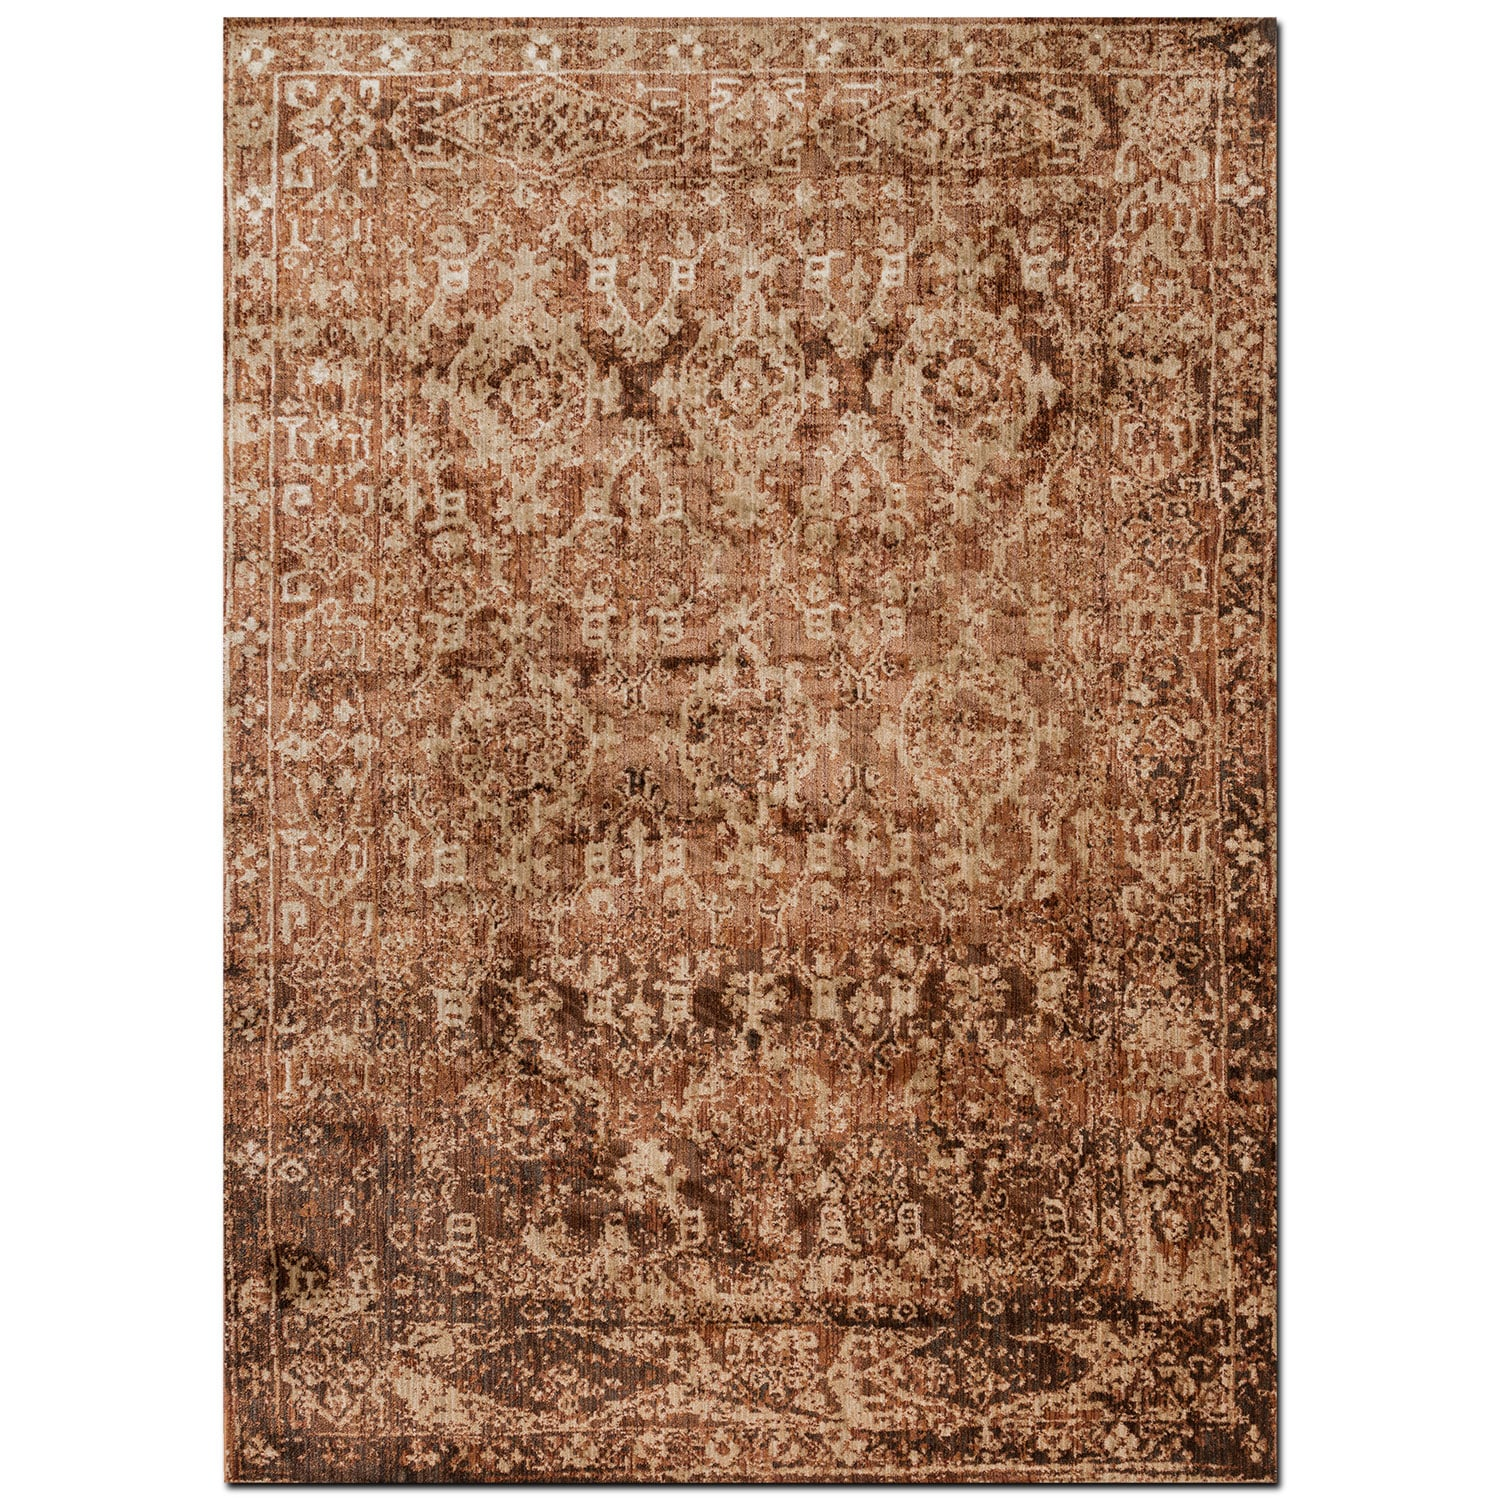 Rugs - Kivi 7' x 10' Rug - Sand and Copper